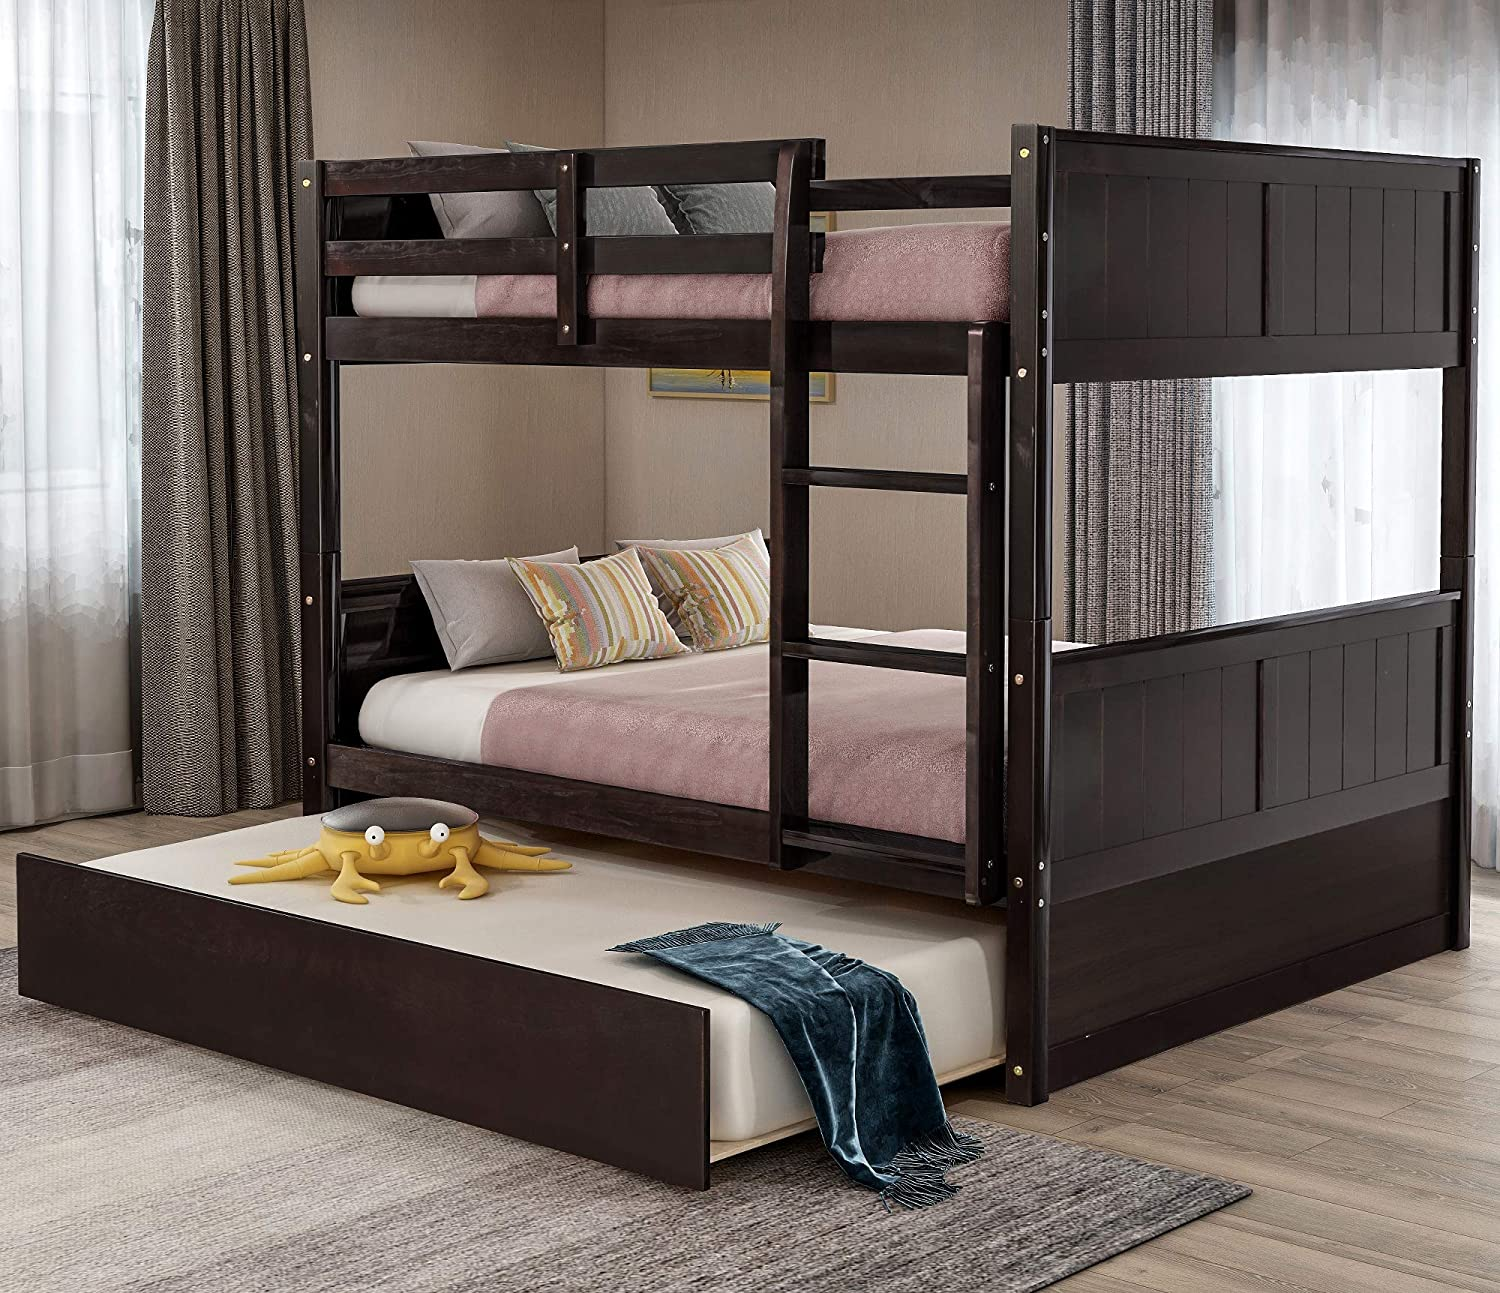 Amazon Com Bunk Bed Full Over Full With Trundle Julyfox 725lb Heavy Duty Full Size Platform Bed Pine Wood With Headboard Foot Board No Box Spring Need Bunk Beds With Ladders Guard Rails Space